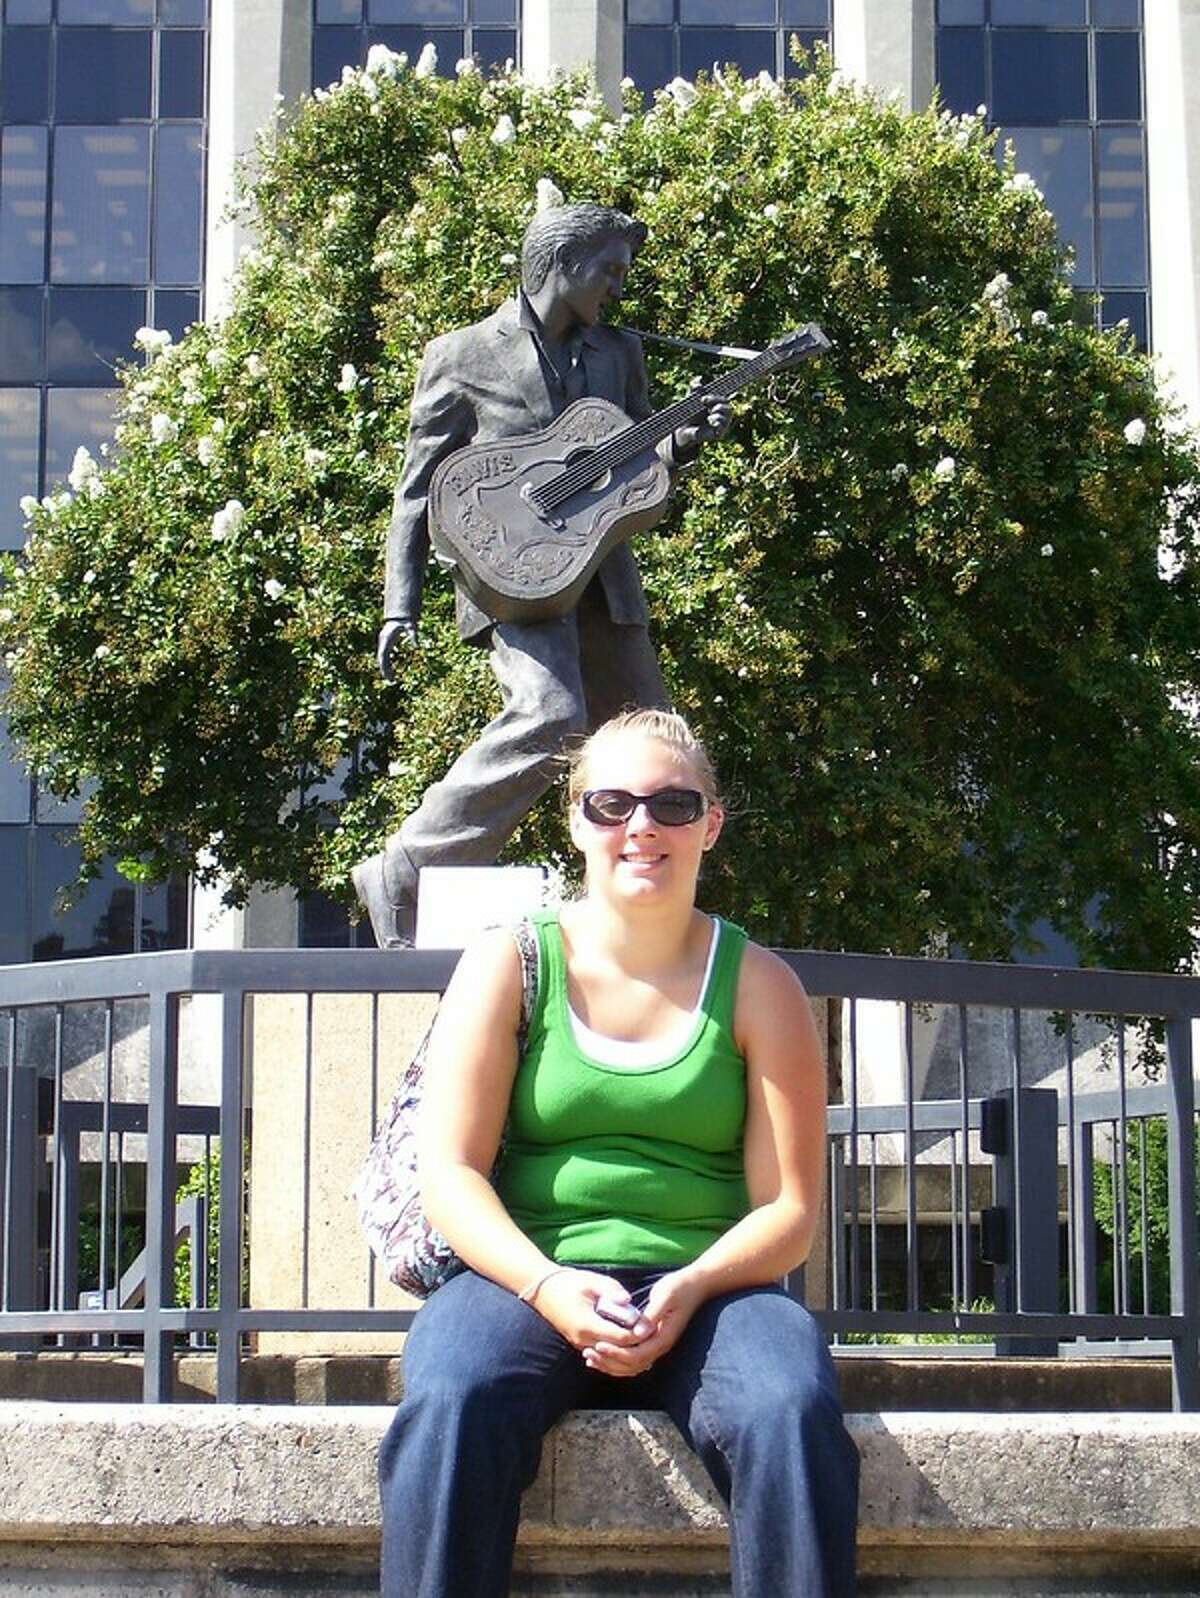 1. In 2007, I won a radio contest and got a free trip to see Justin Timberlake in Memphis (his hometown) and stay at the Peabody all for knowing Central Park was in Schenectady (my hometown) which also started my obsession with Elvis Presley.